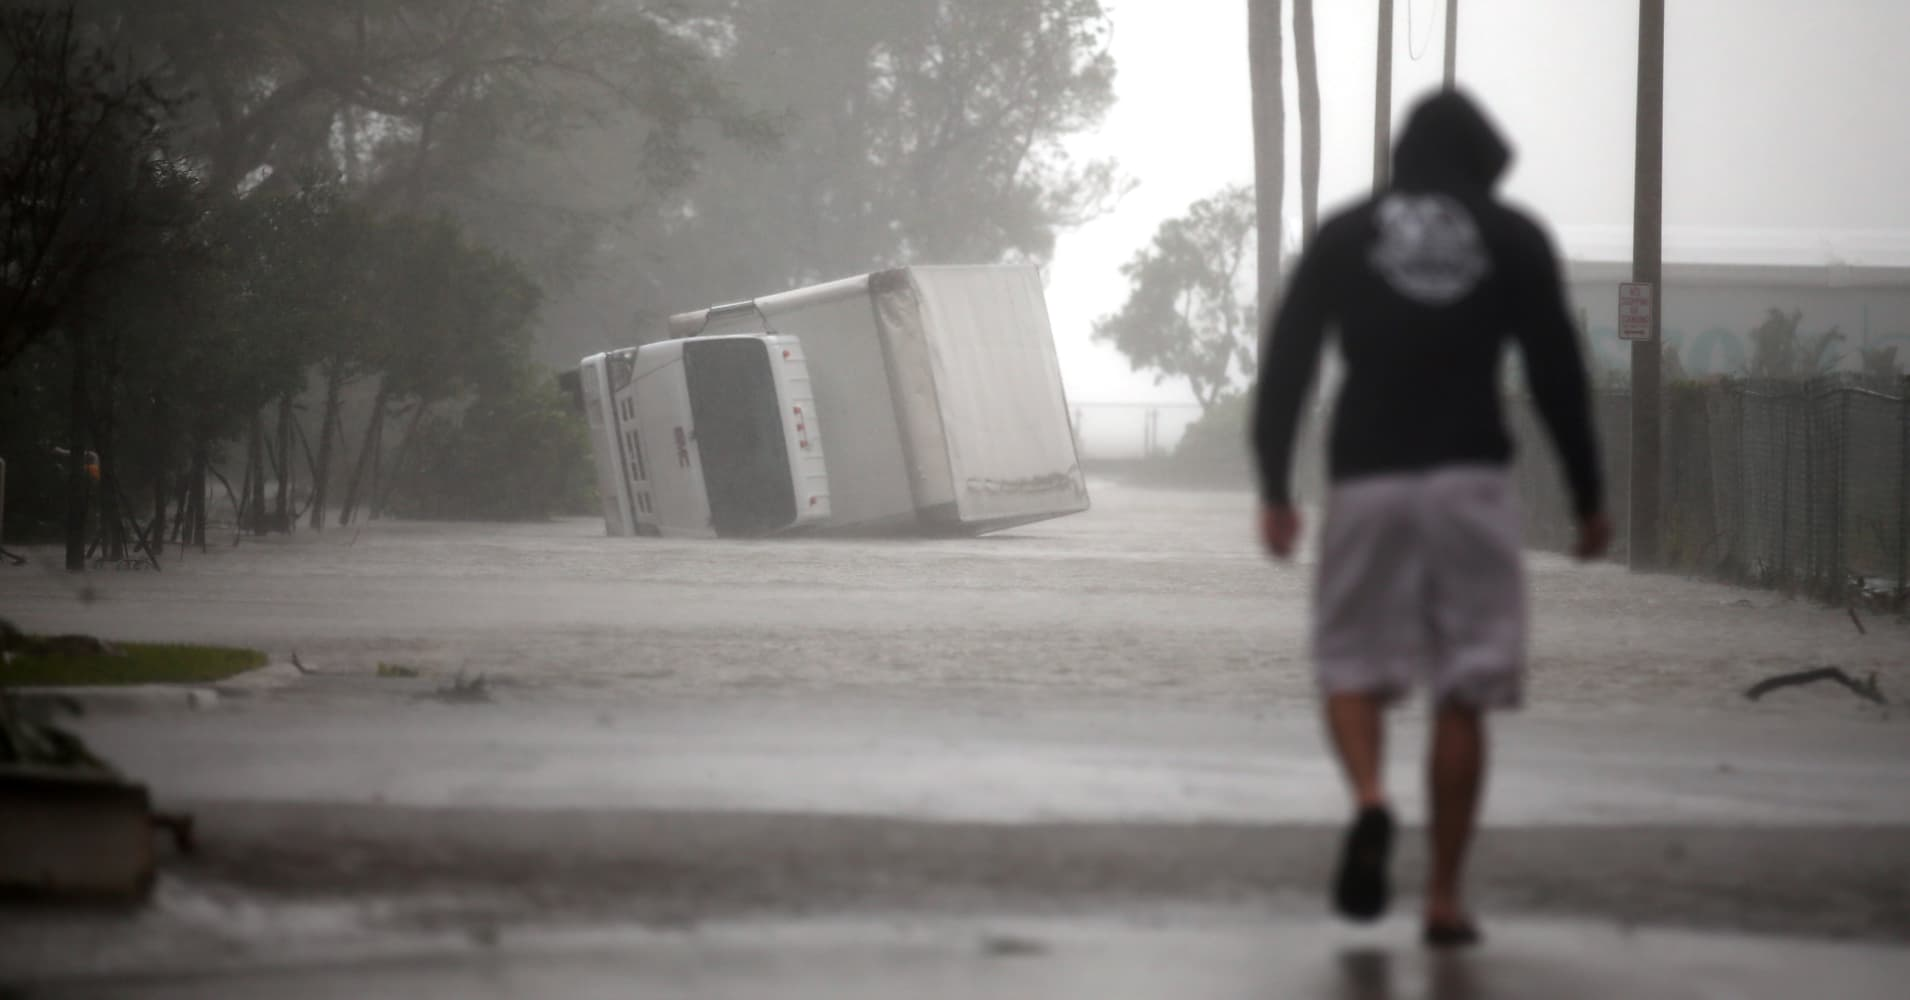 A truck is seen turned over as Hurricane Irma passes south Florida, in Miami, U.S. September 10, 2017.